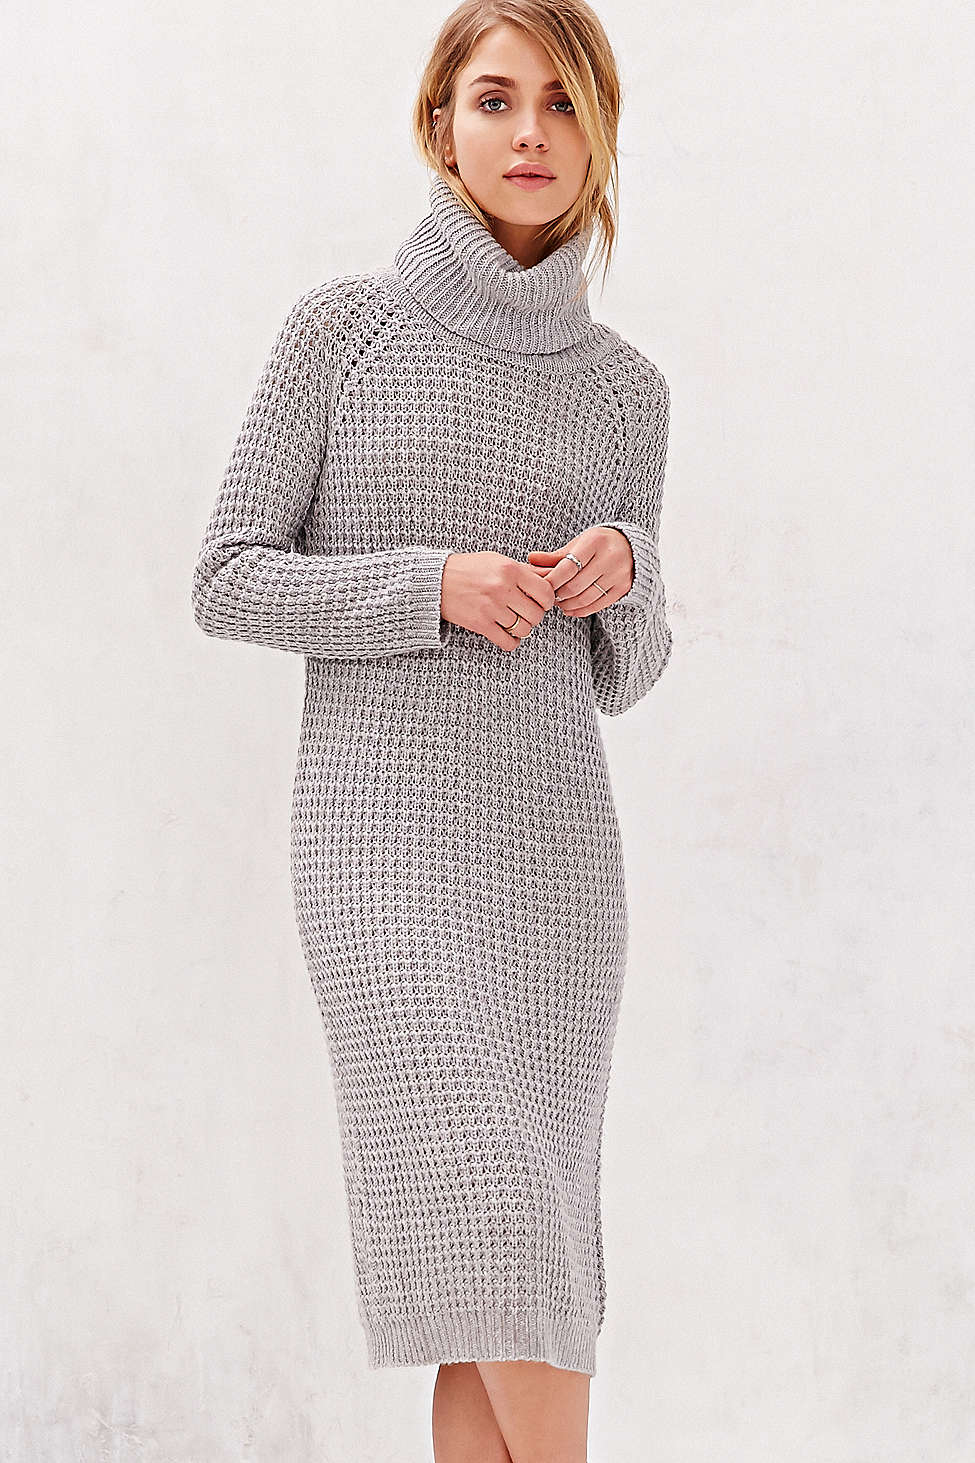 Survive the Polar Vortex in Style with a Sweater Dress